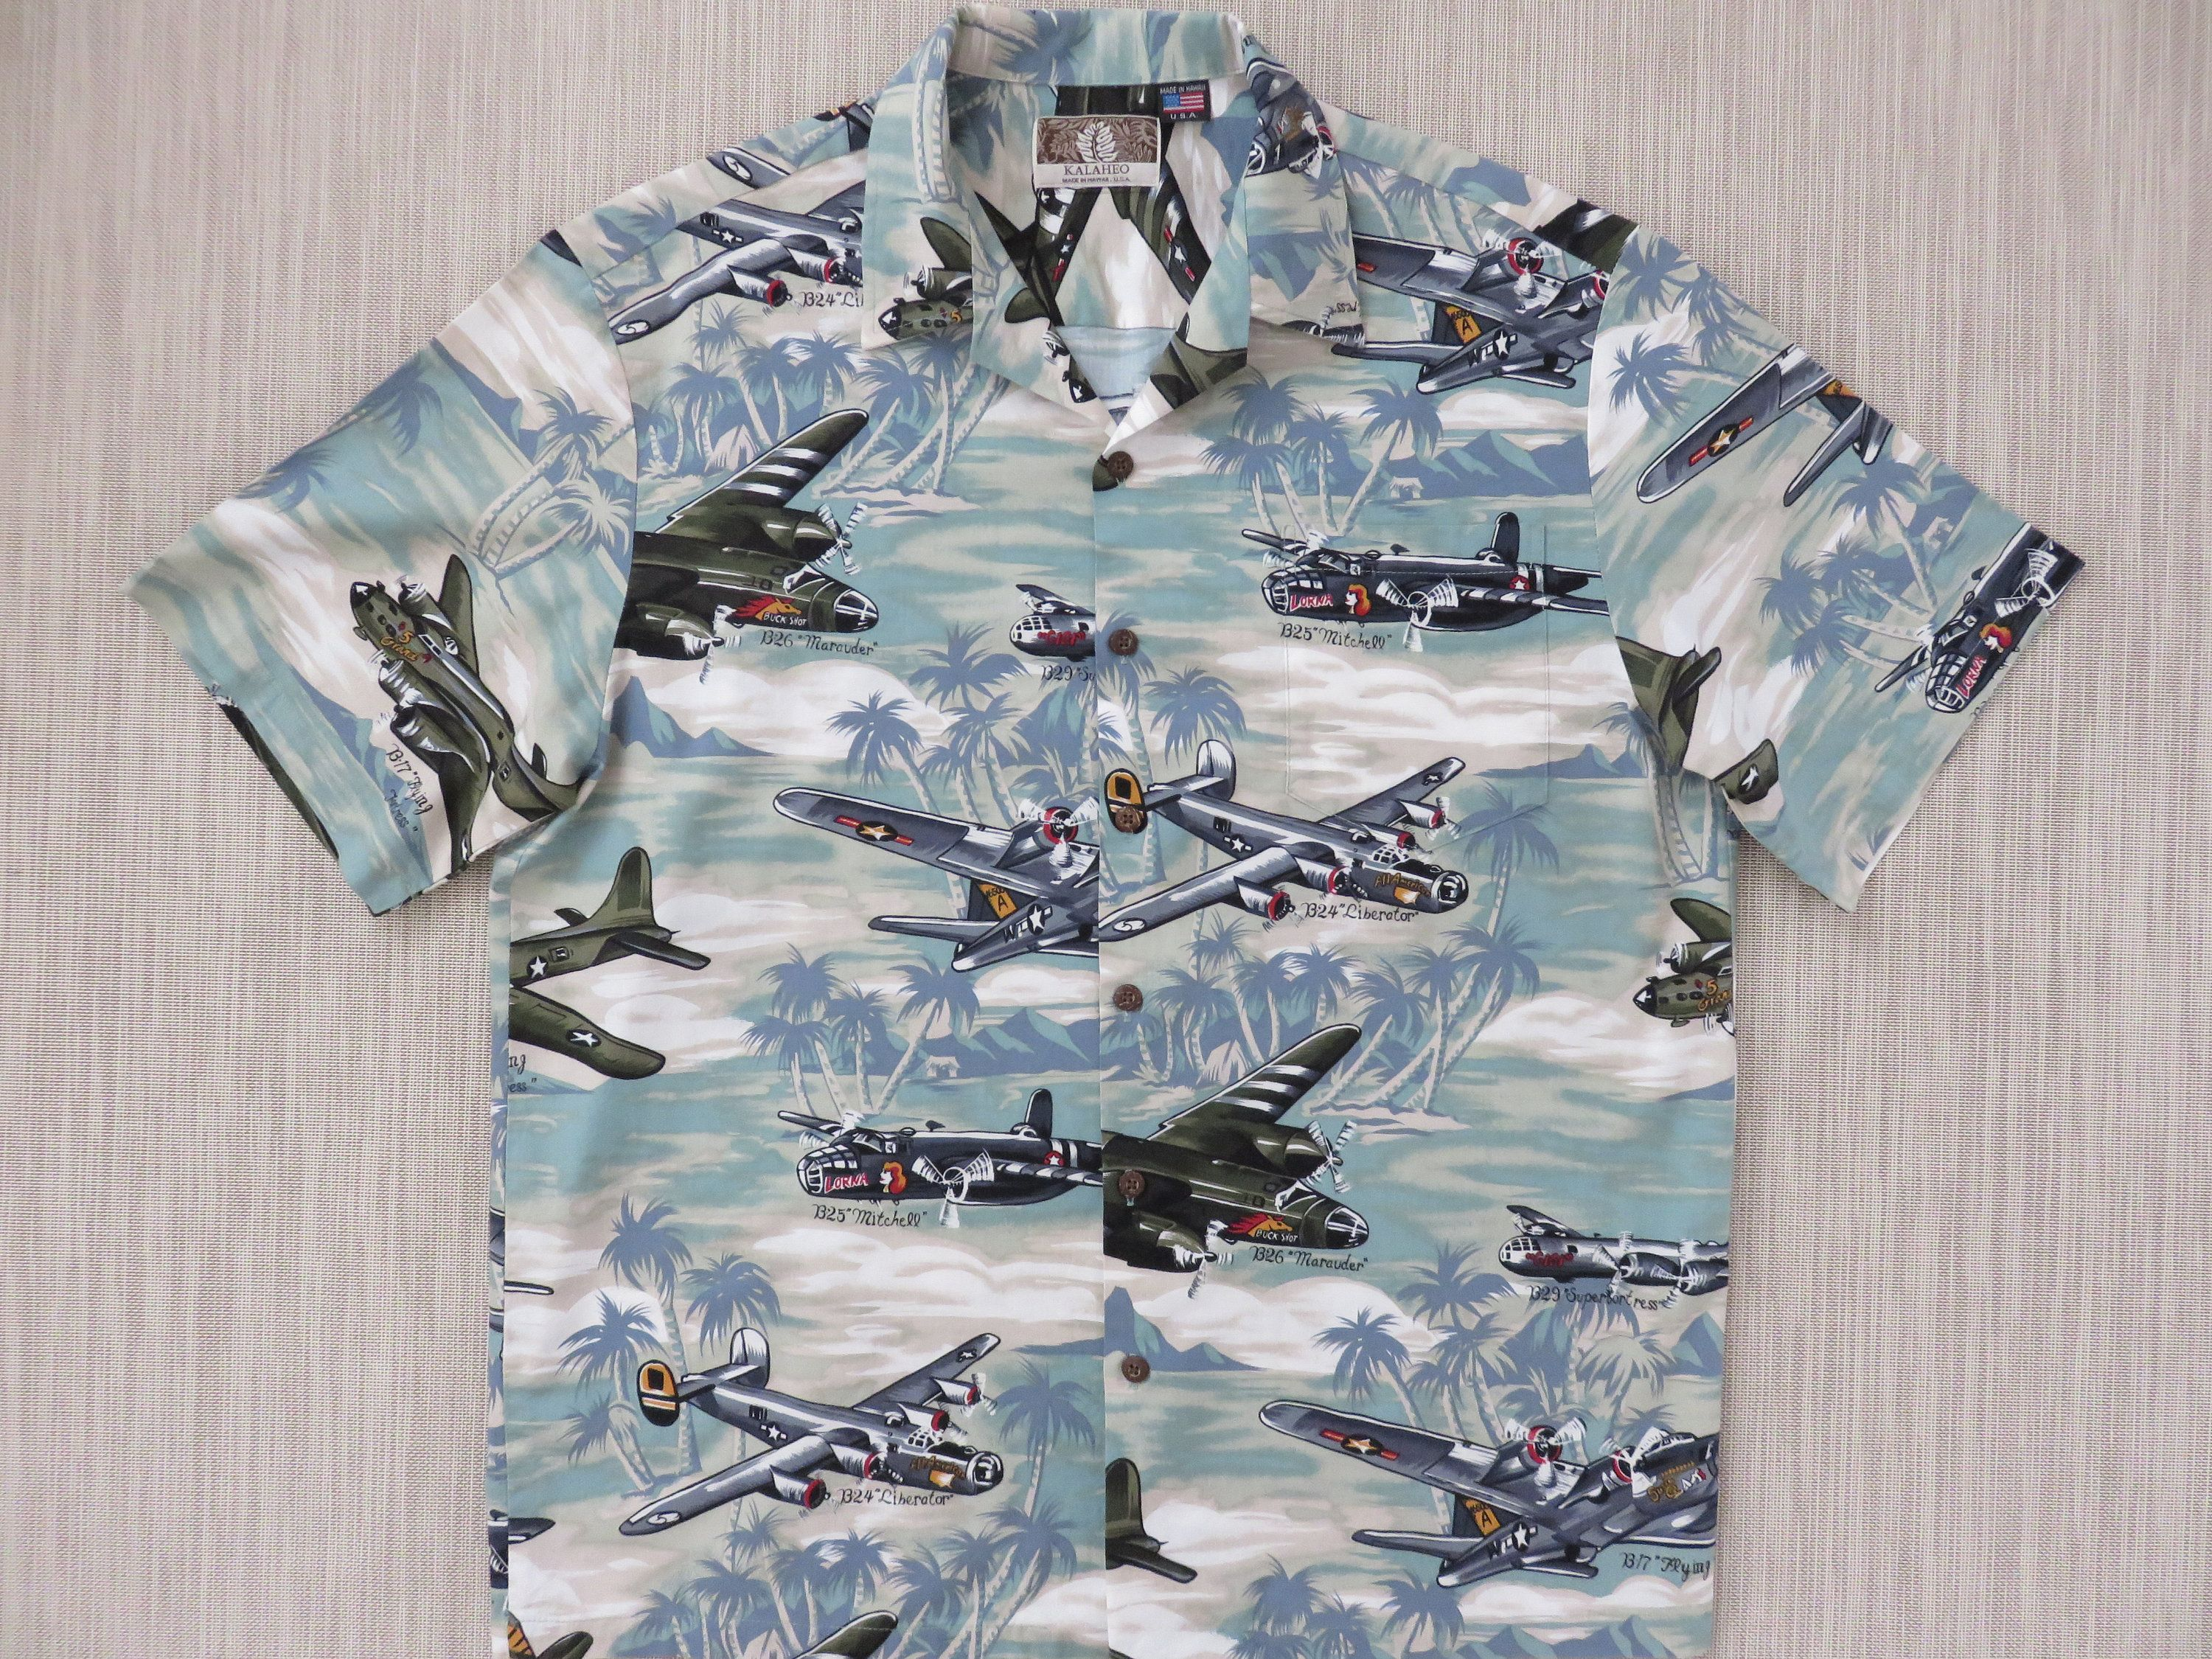 93041d8c0 Hawaiian Shirt Airplane Shirt KALAHEO Commerative World War II Bombers B17  B25 B26 B29 Planes 100% Cotton Camp - L - Oahu Lew's Shirt Shack by ...